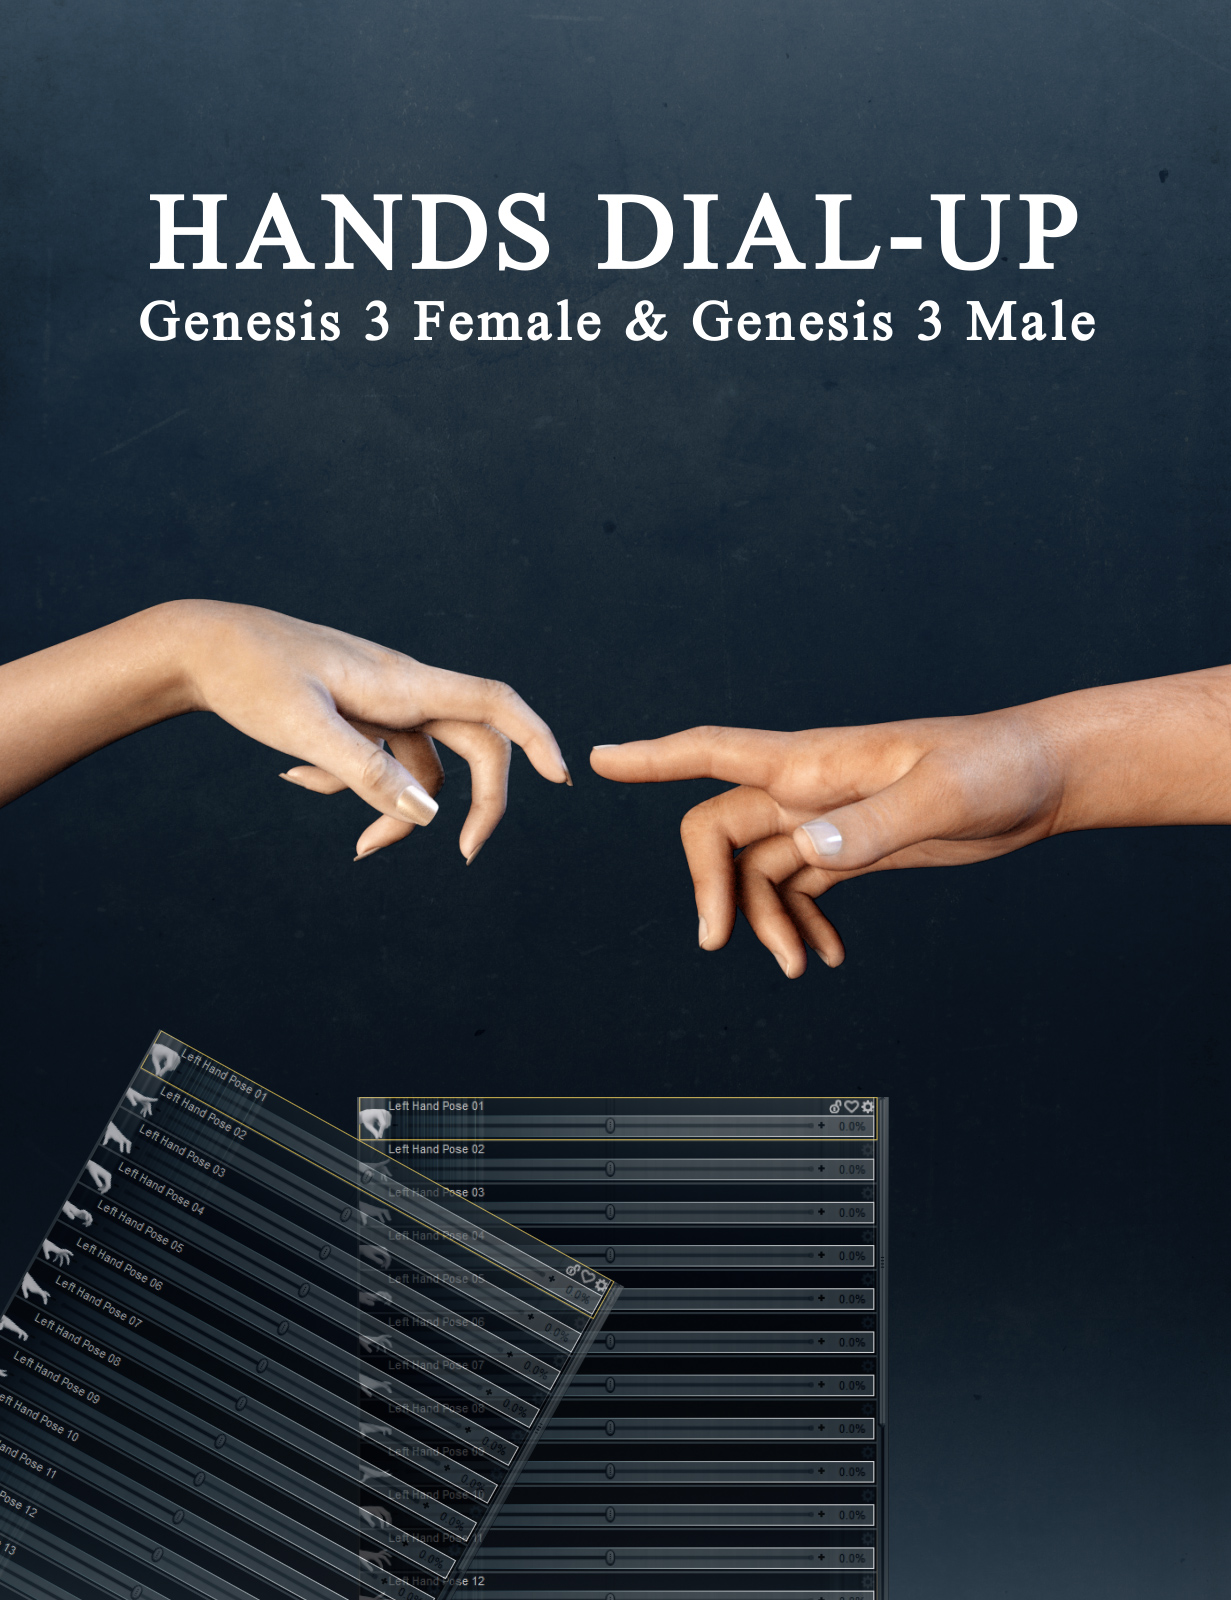 Hands Dial-up for Genesis 3 Male and Female by: Neikdian, 3D Models by Daz 3D